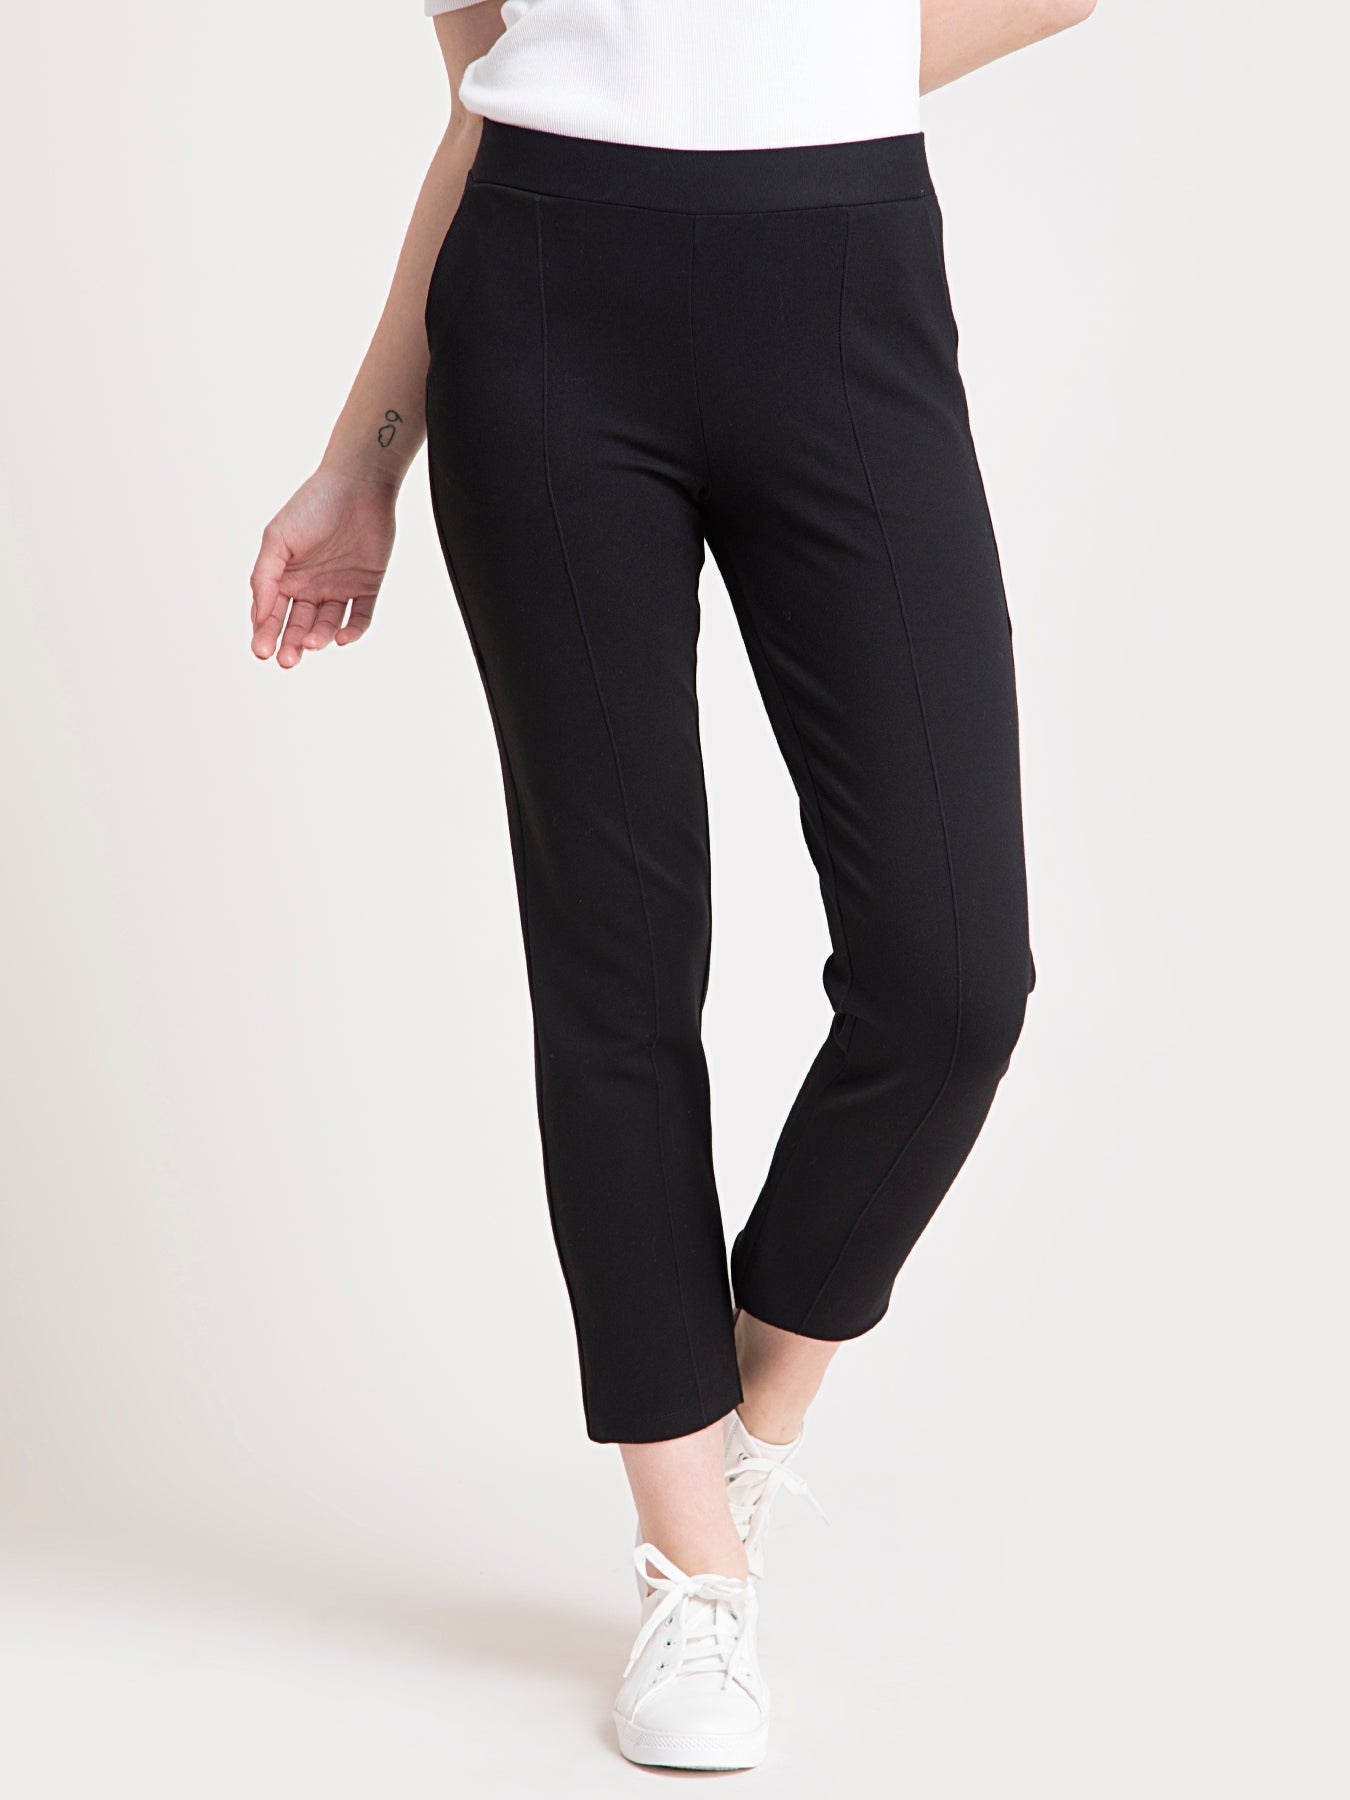 4 Way Stretch Cropped LivIn Pants - Black